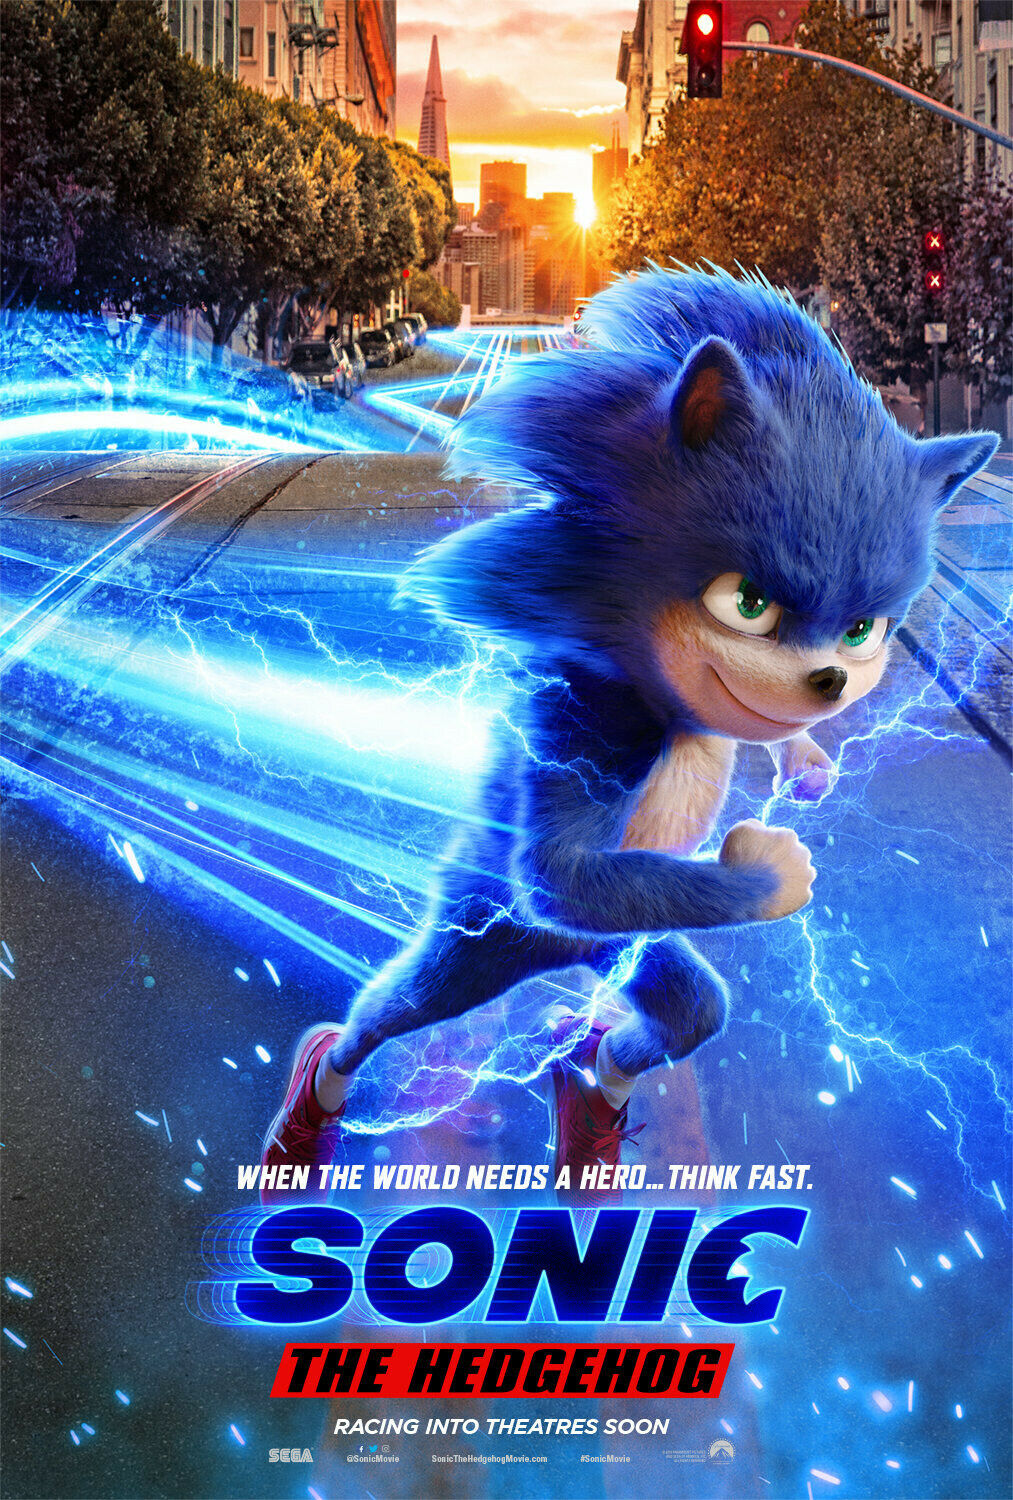 Sonic The Hedgehog 2019 Poster 36x24 21x14 Movie Film Forces